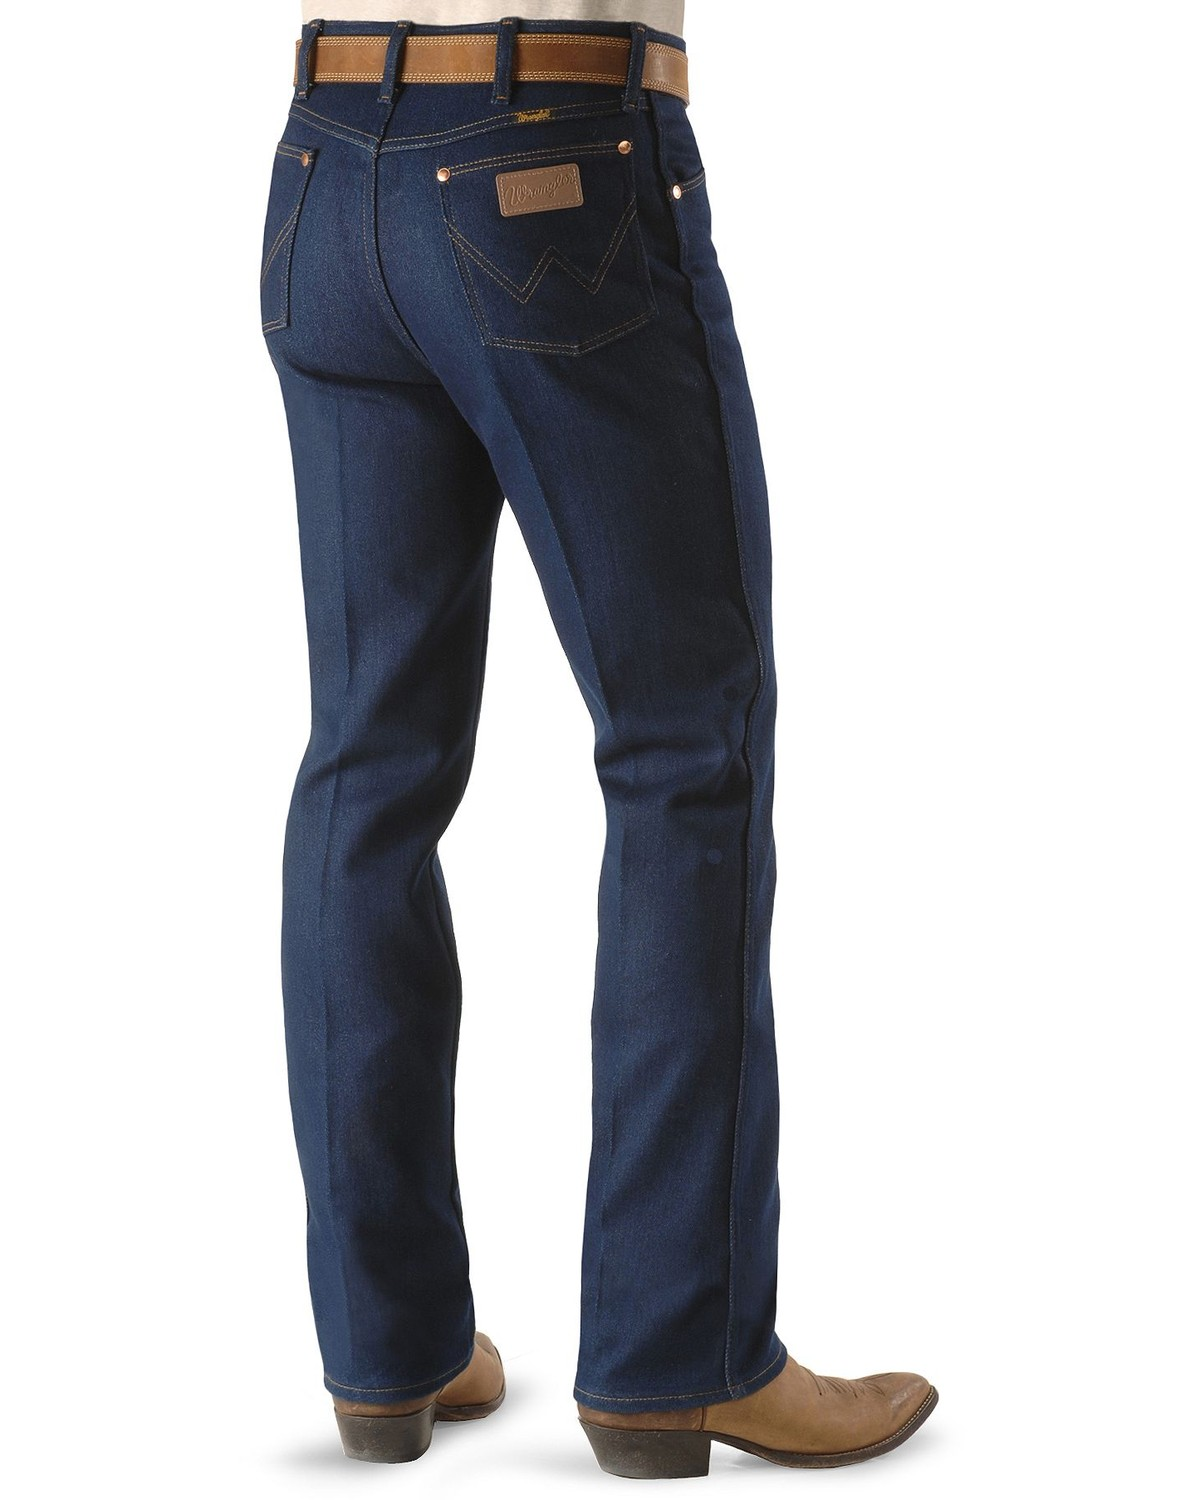 Wrangler Jeans 947 Regular Fit Stretch Big 44 Quot To 54